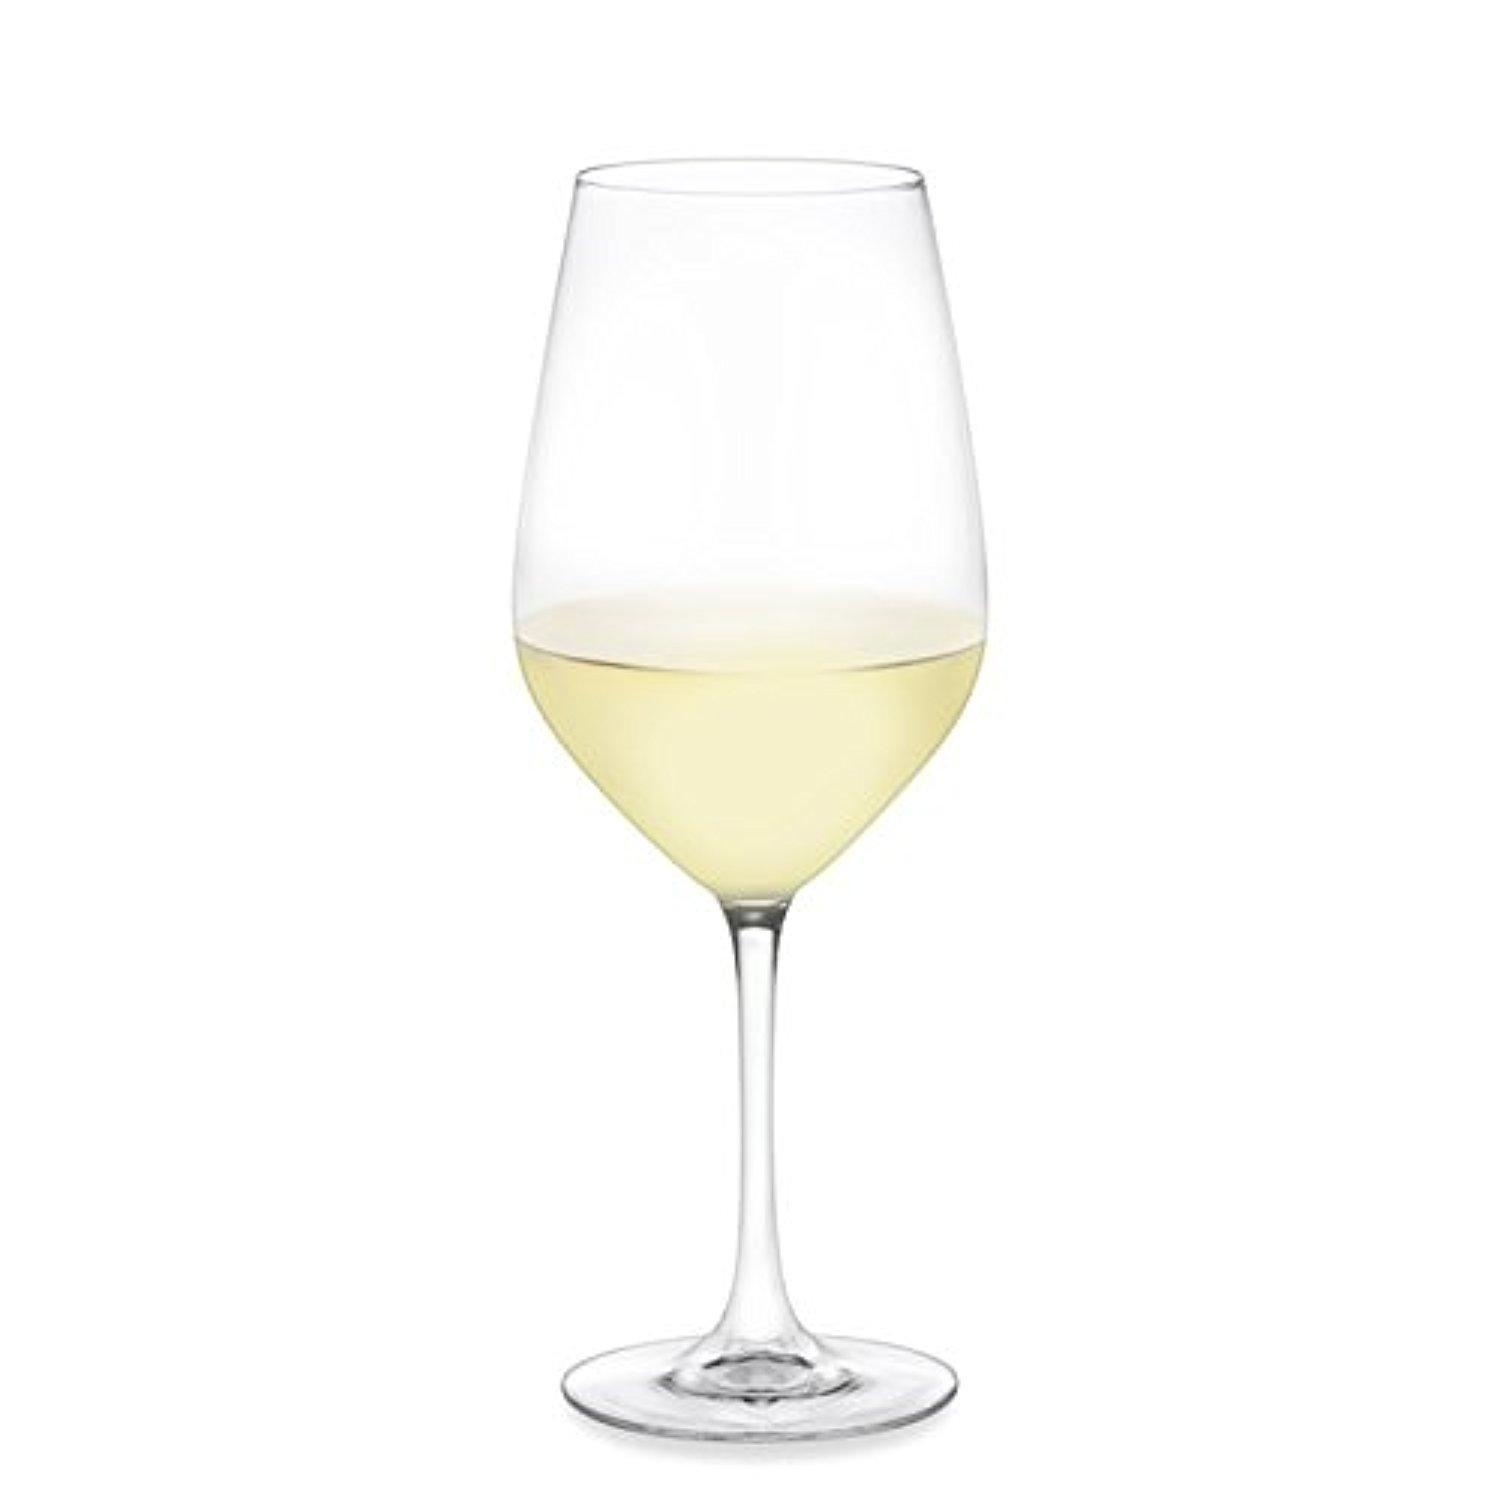 Sturdy Wine Glasses | German Champagne Flutes | Schott Zwiesel Wine Glasses